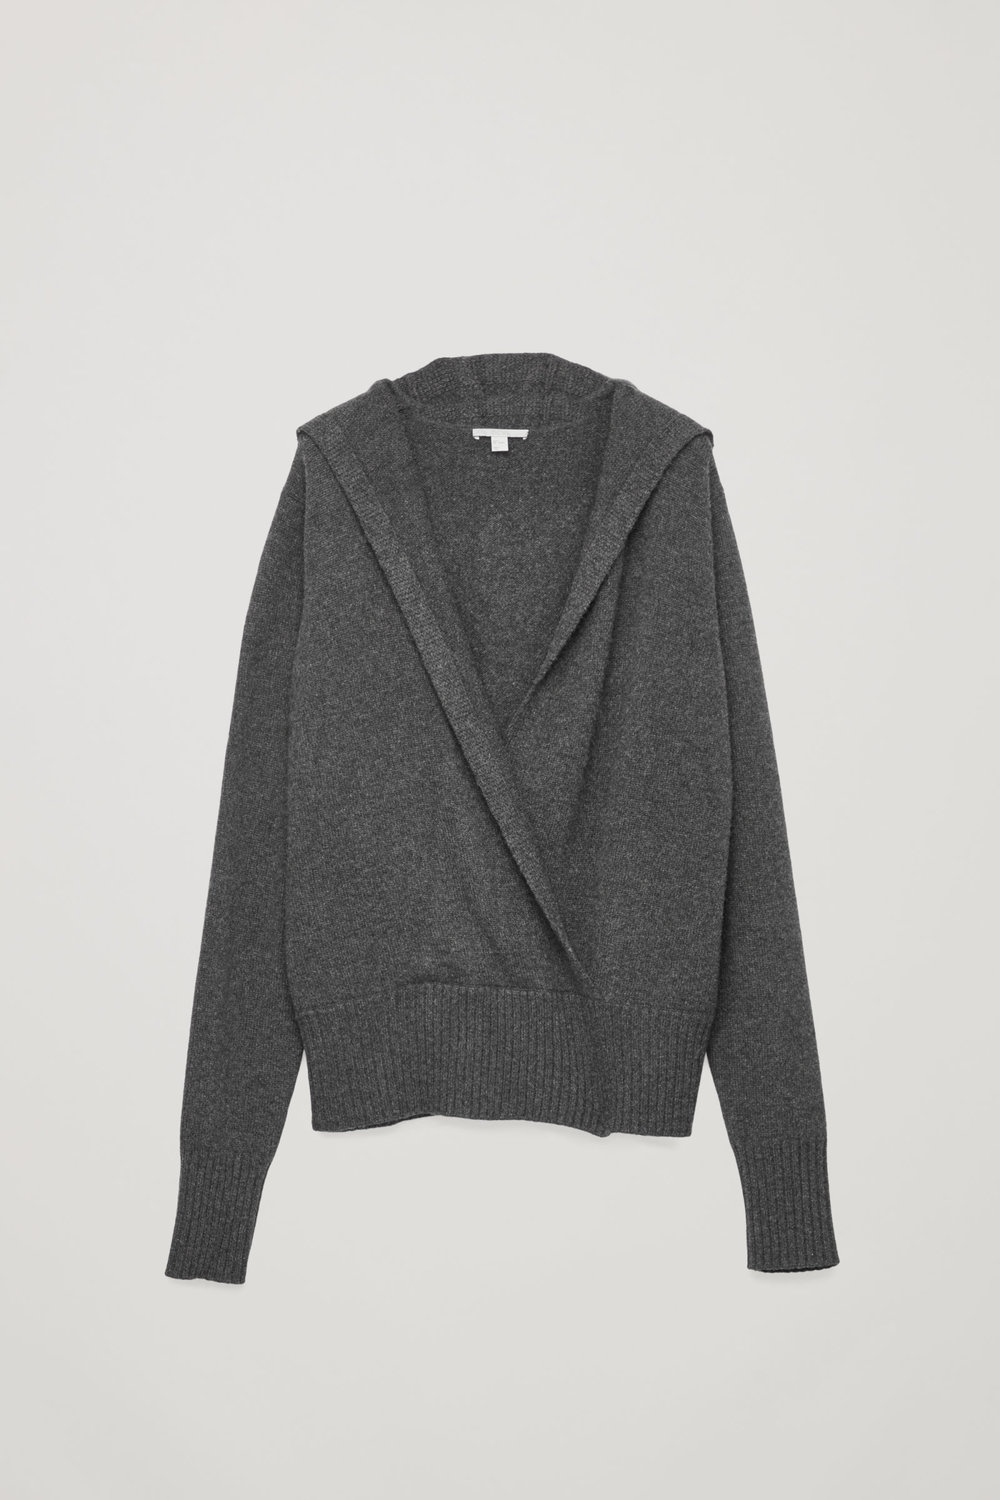 COS Cashmere Hooded Jumper